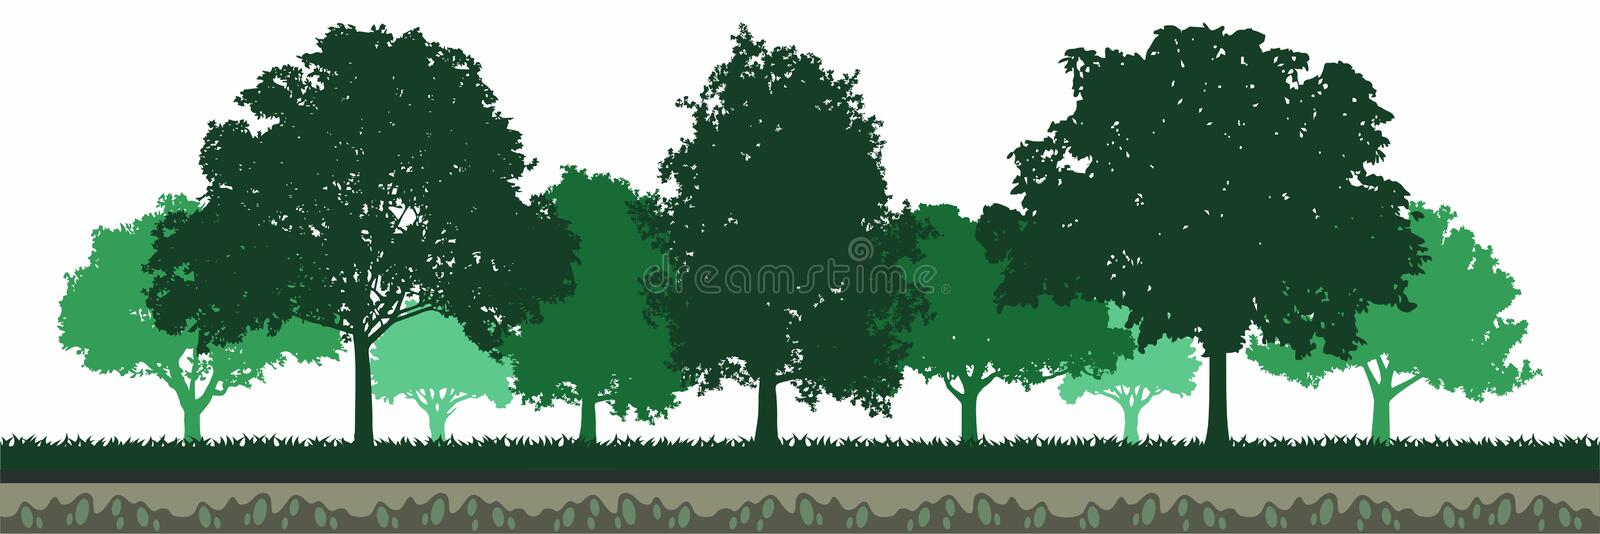 Roble verde Forest Environment ilustración del vector